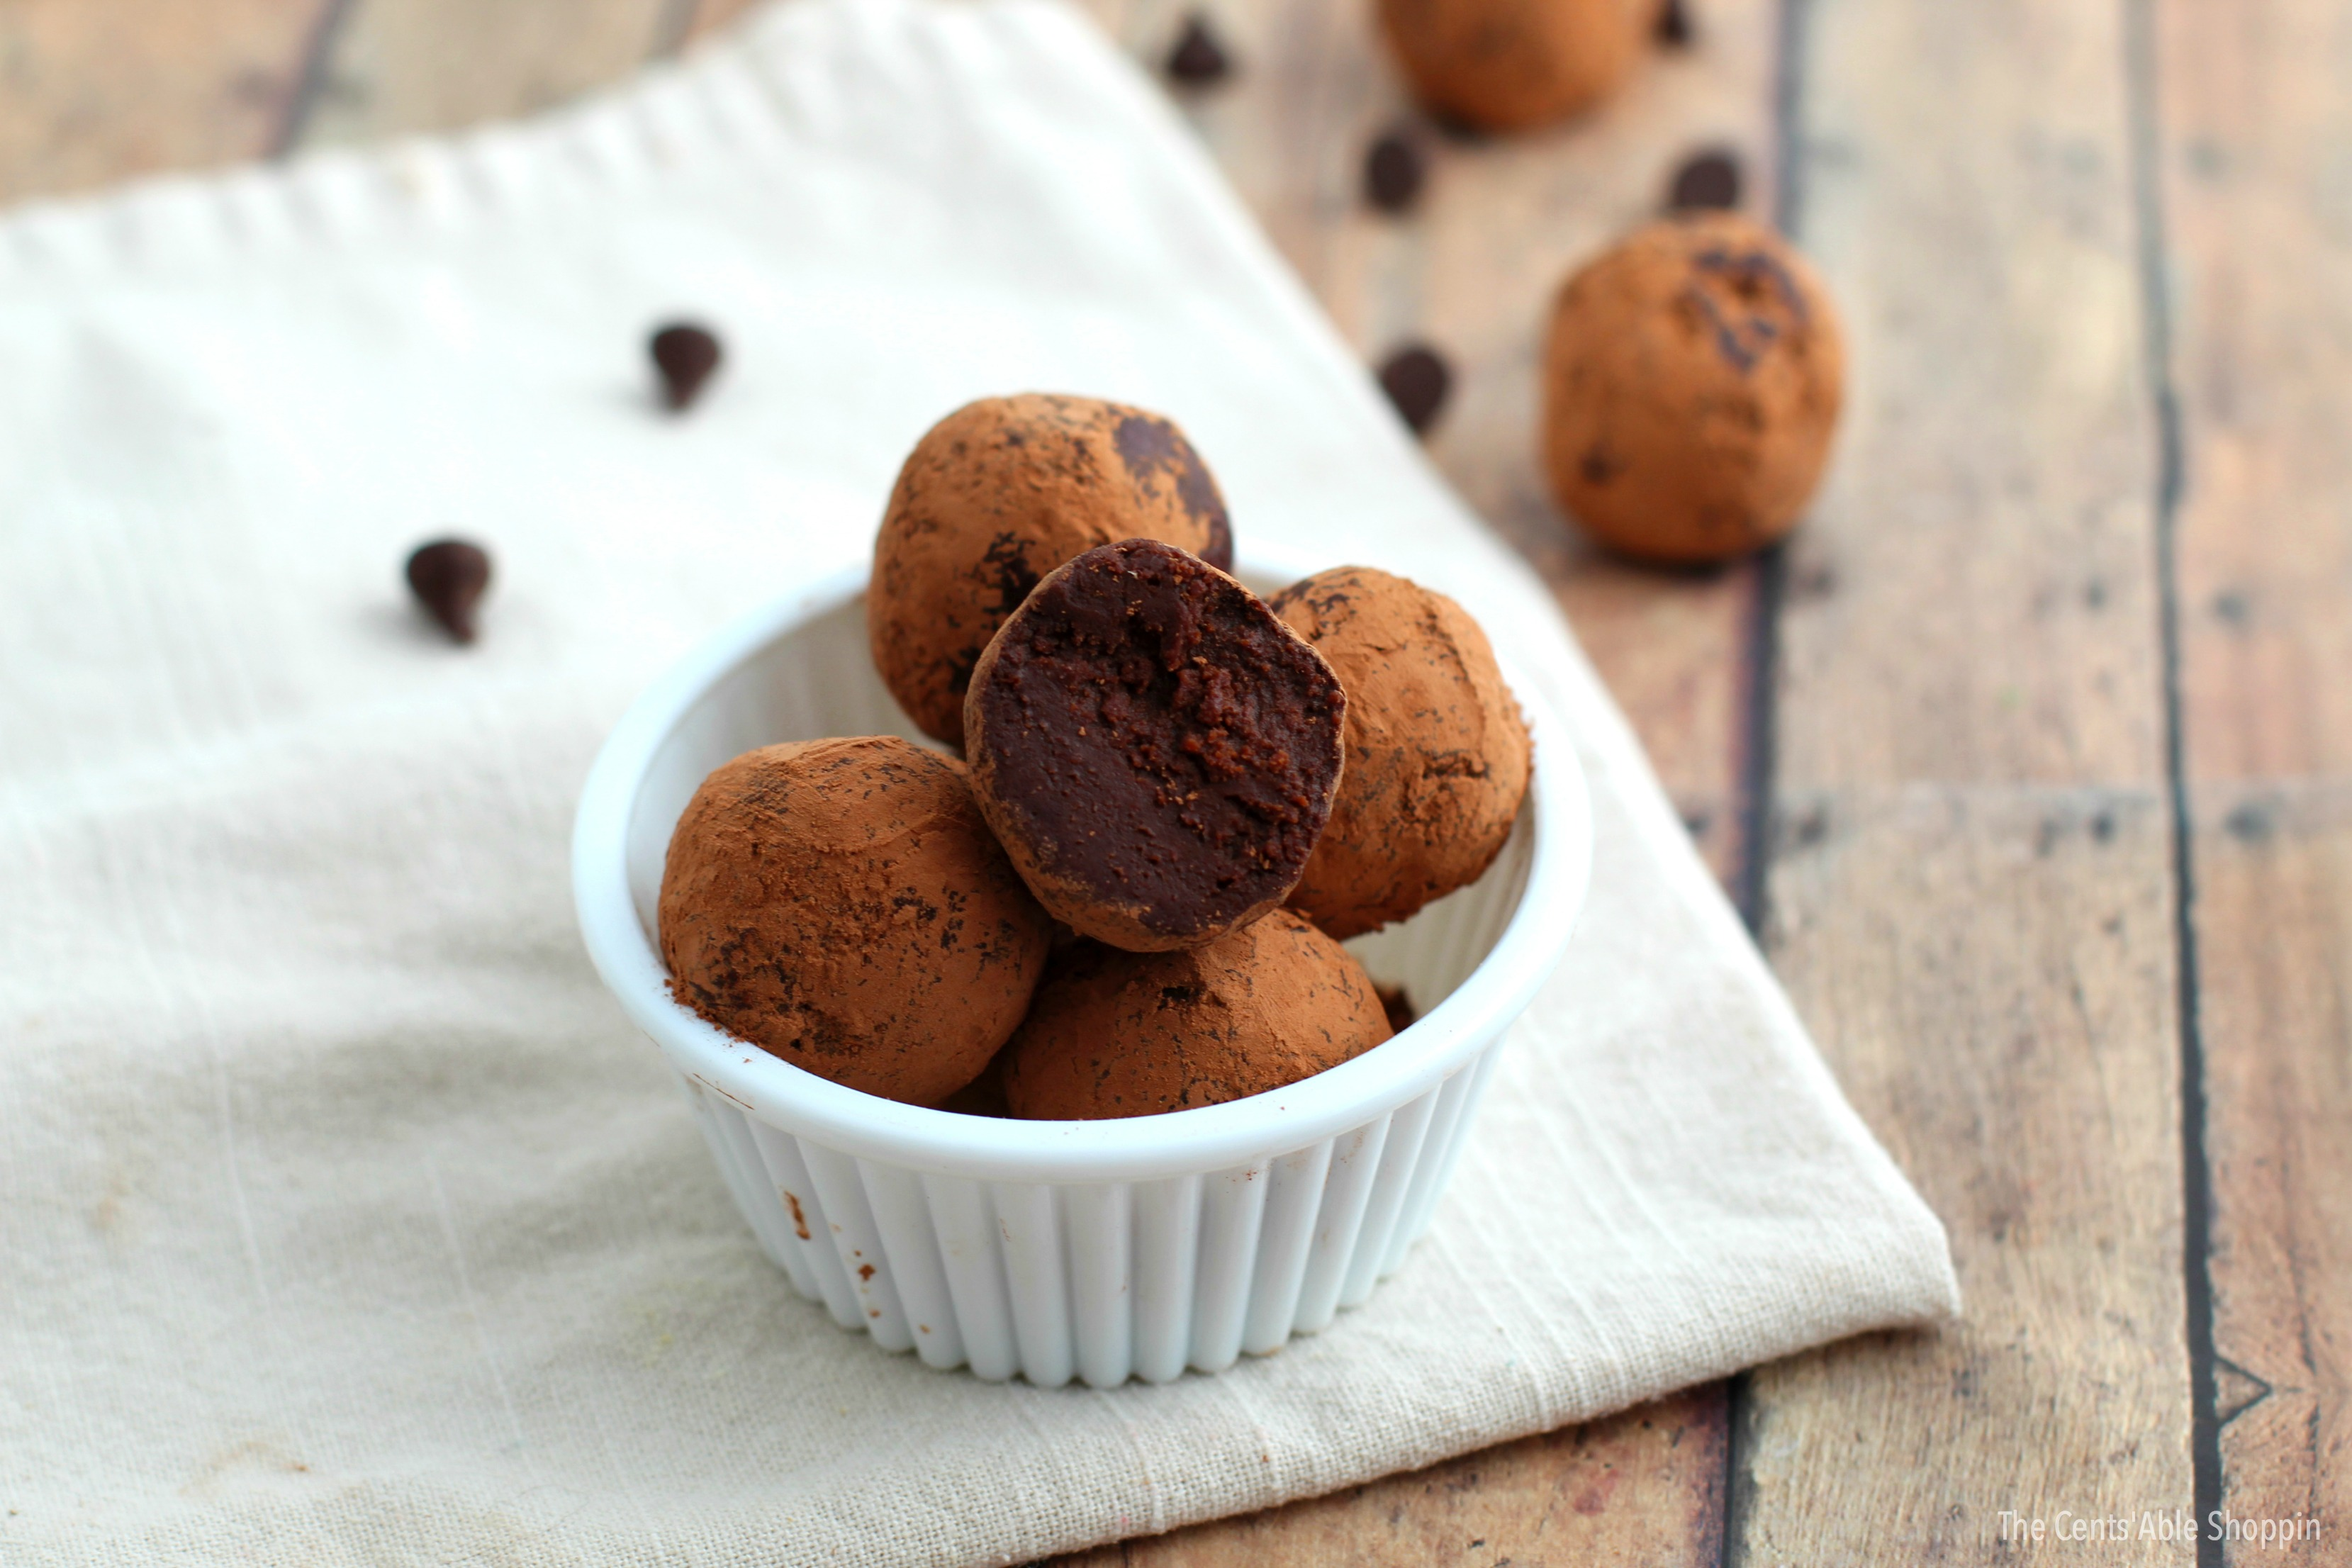 These Healthy Chocolate Fudge Truffles taste like heaven in a bite size snack! They are made quite easily with 4 simple ingredients!